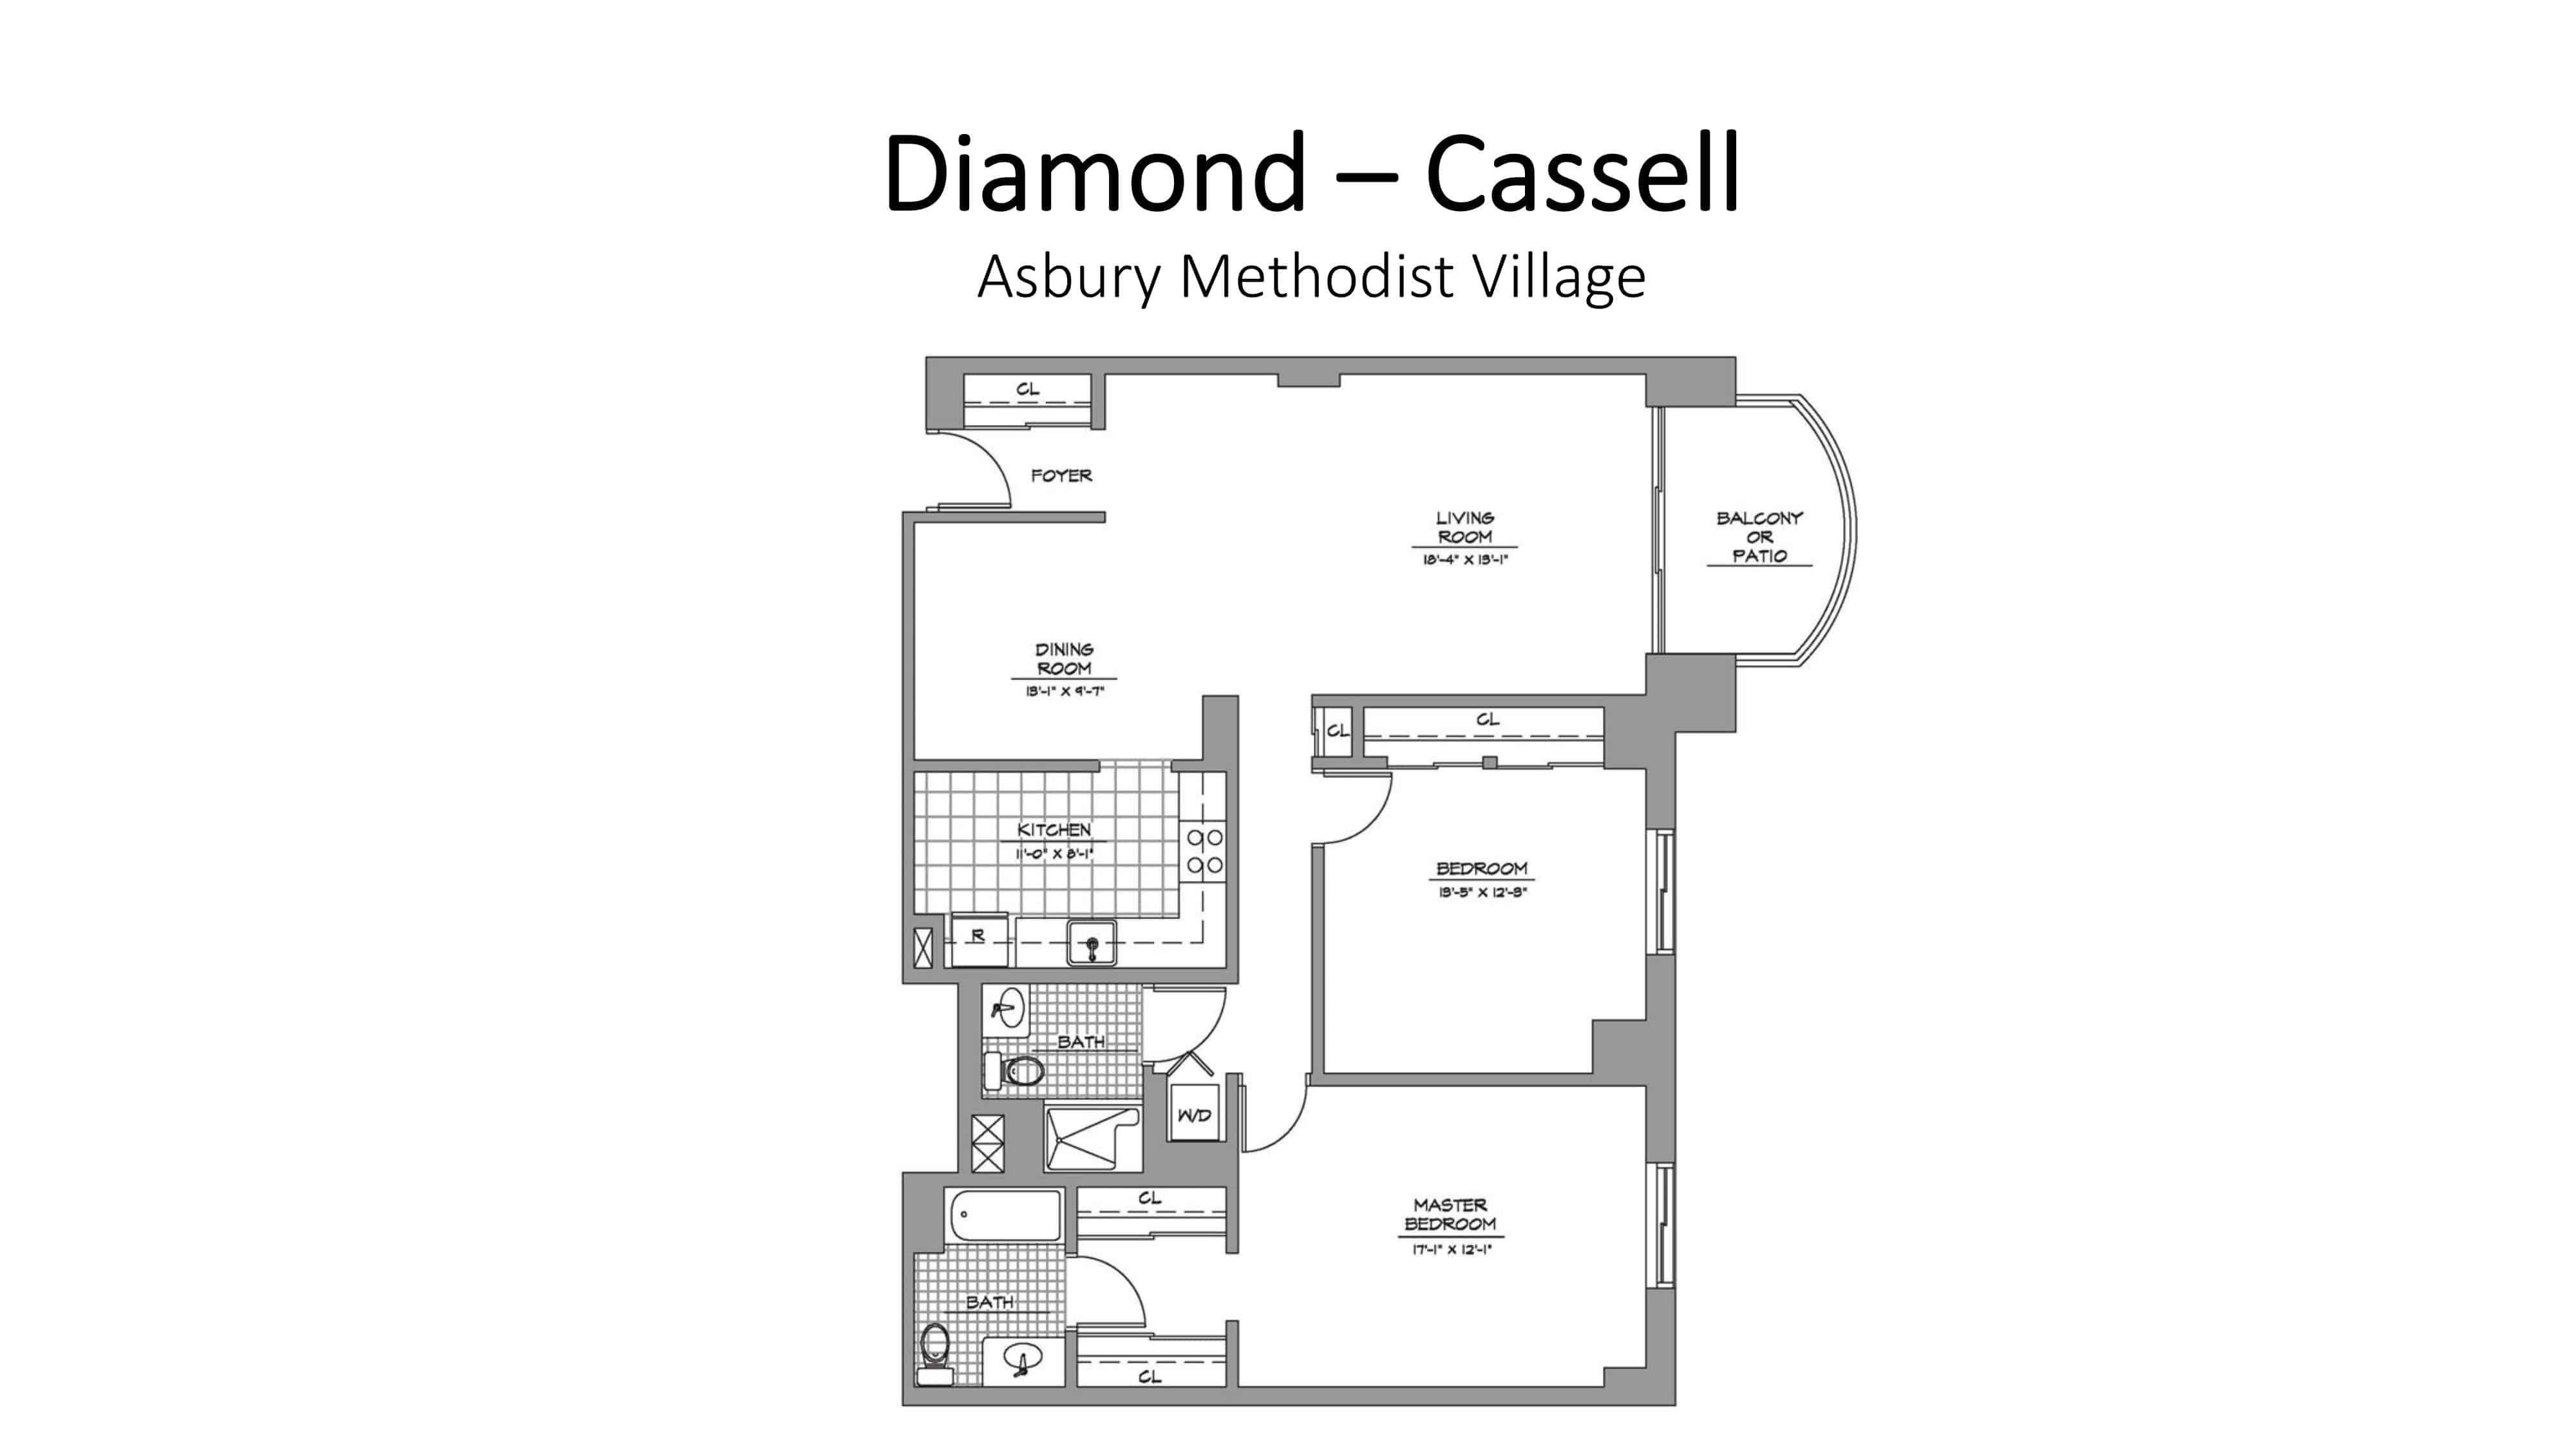 Asbury Methodist Village Diamond - Cassell